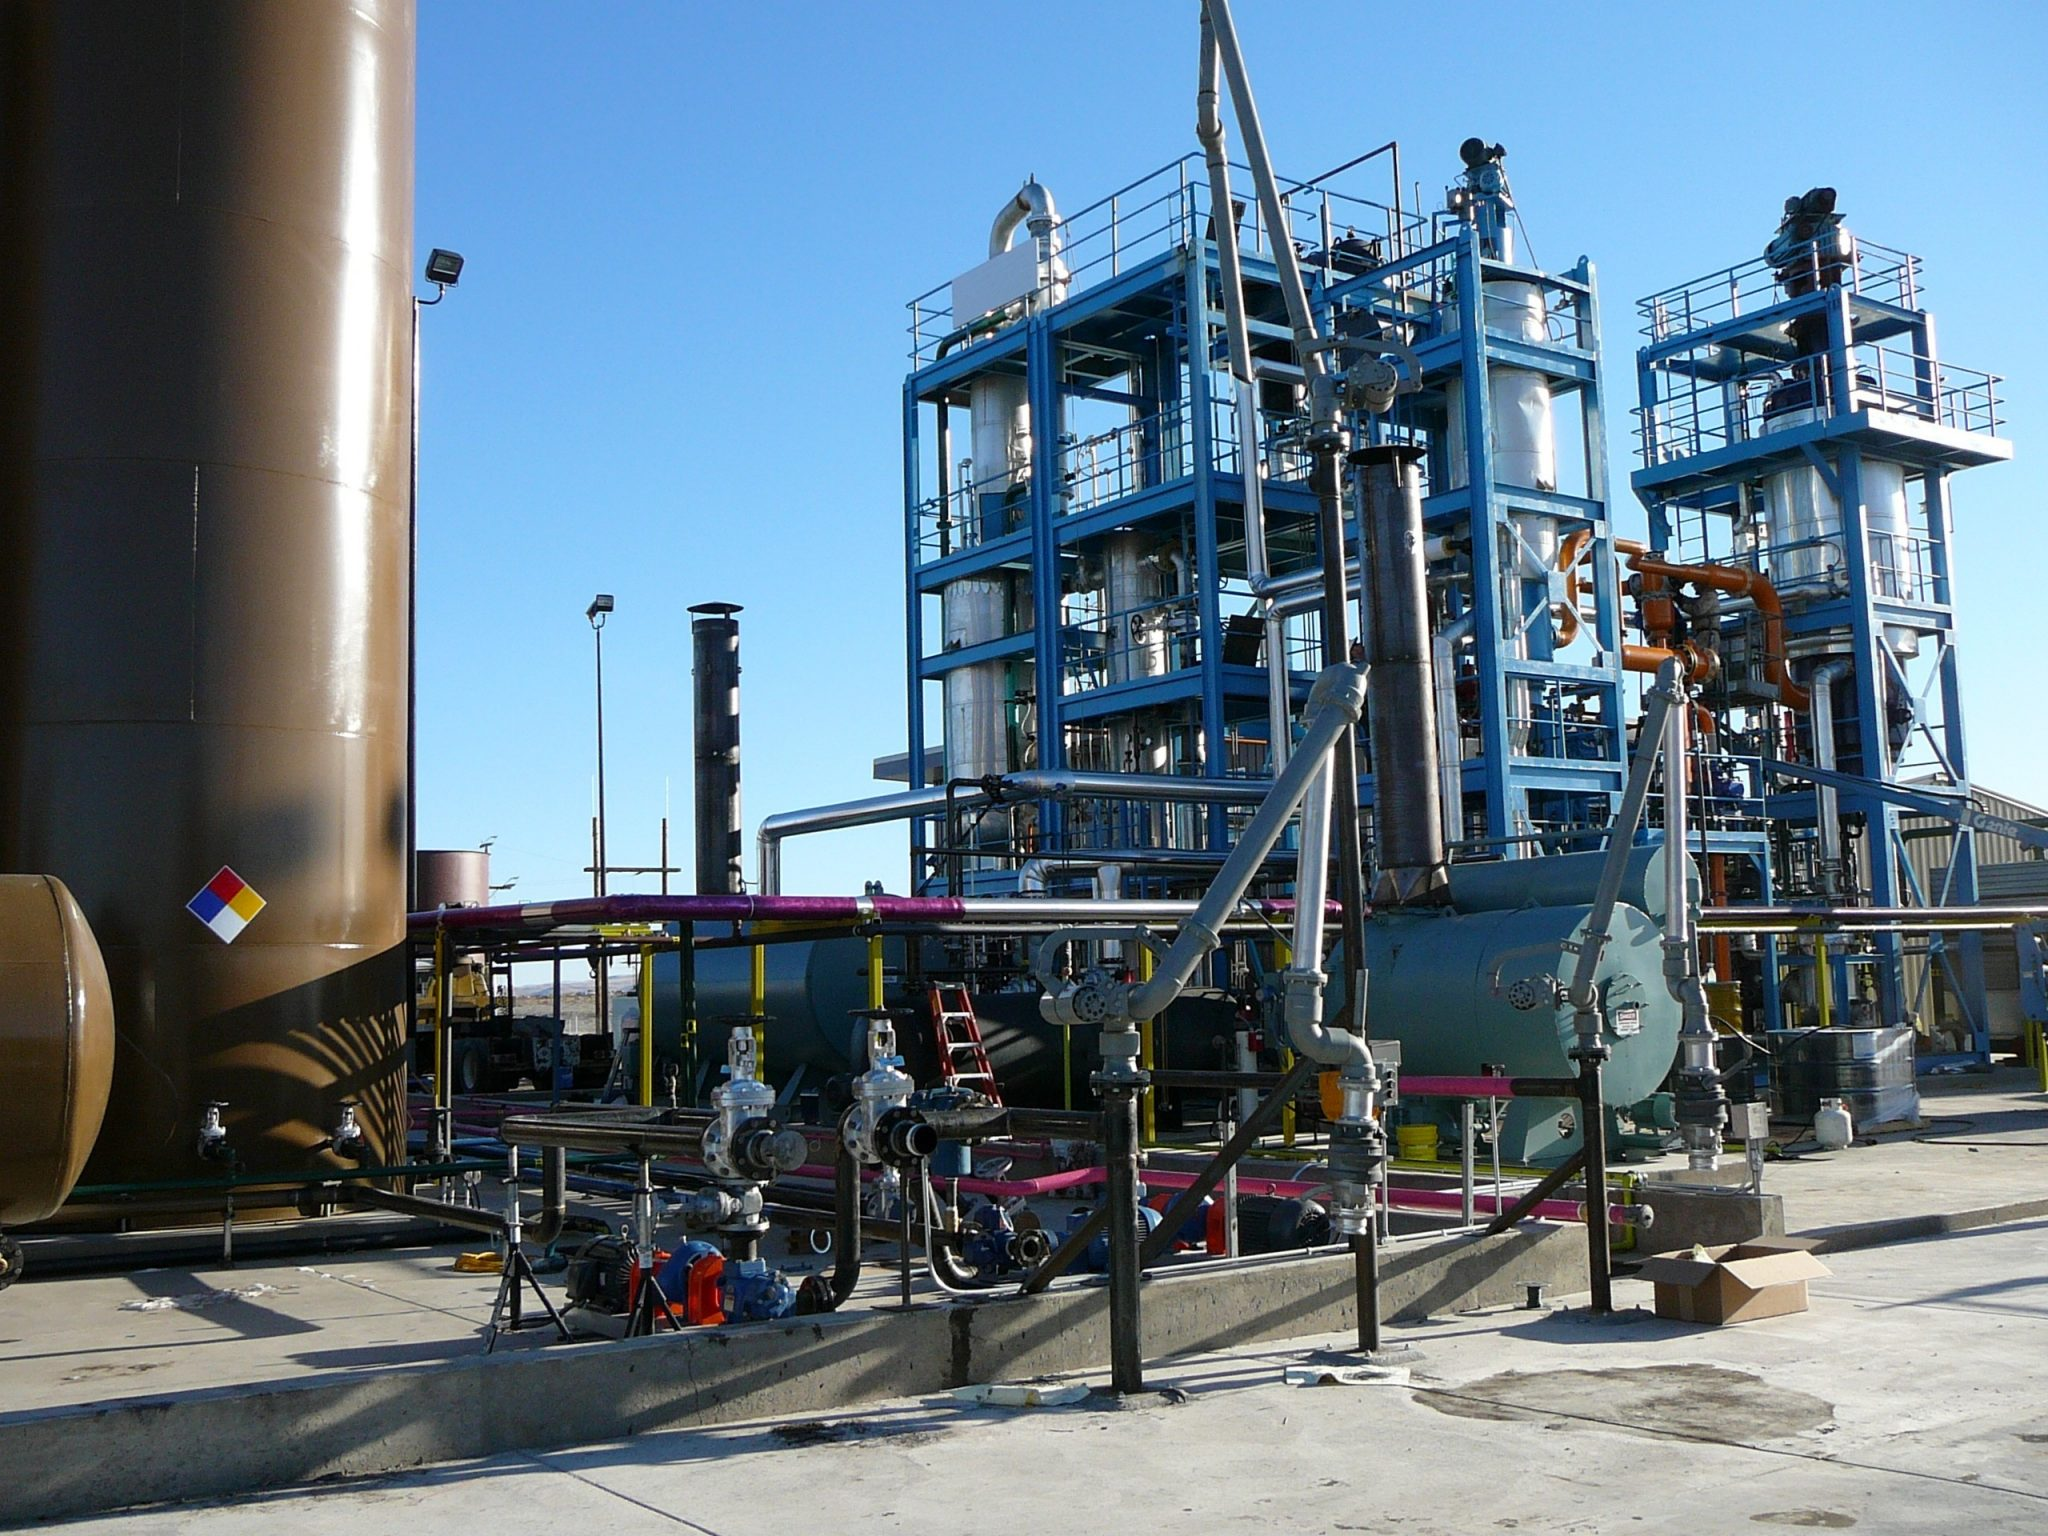 Waste oil recycling wiped film evaporator stacks 2